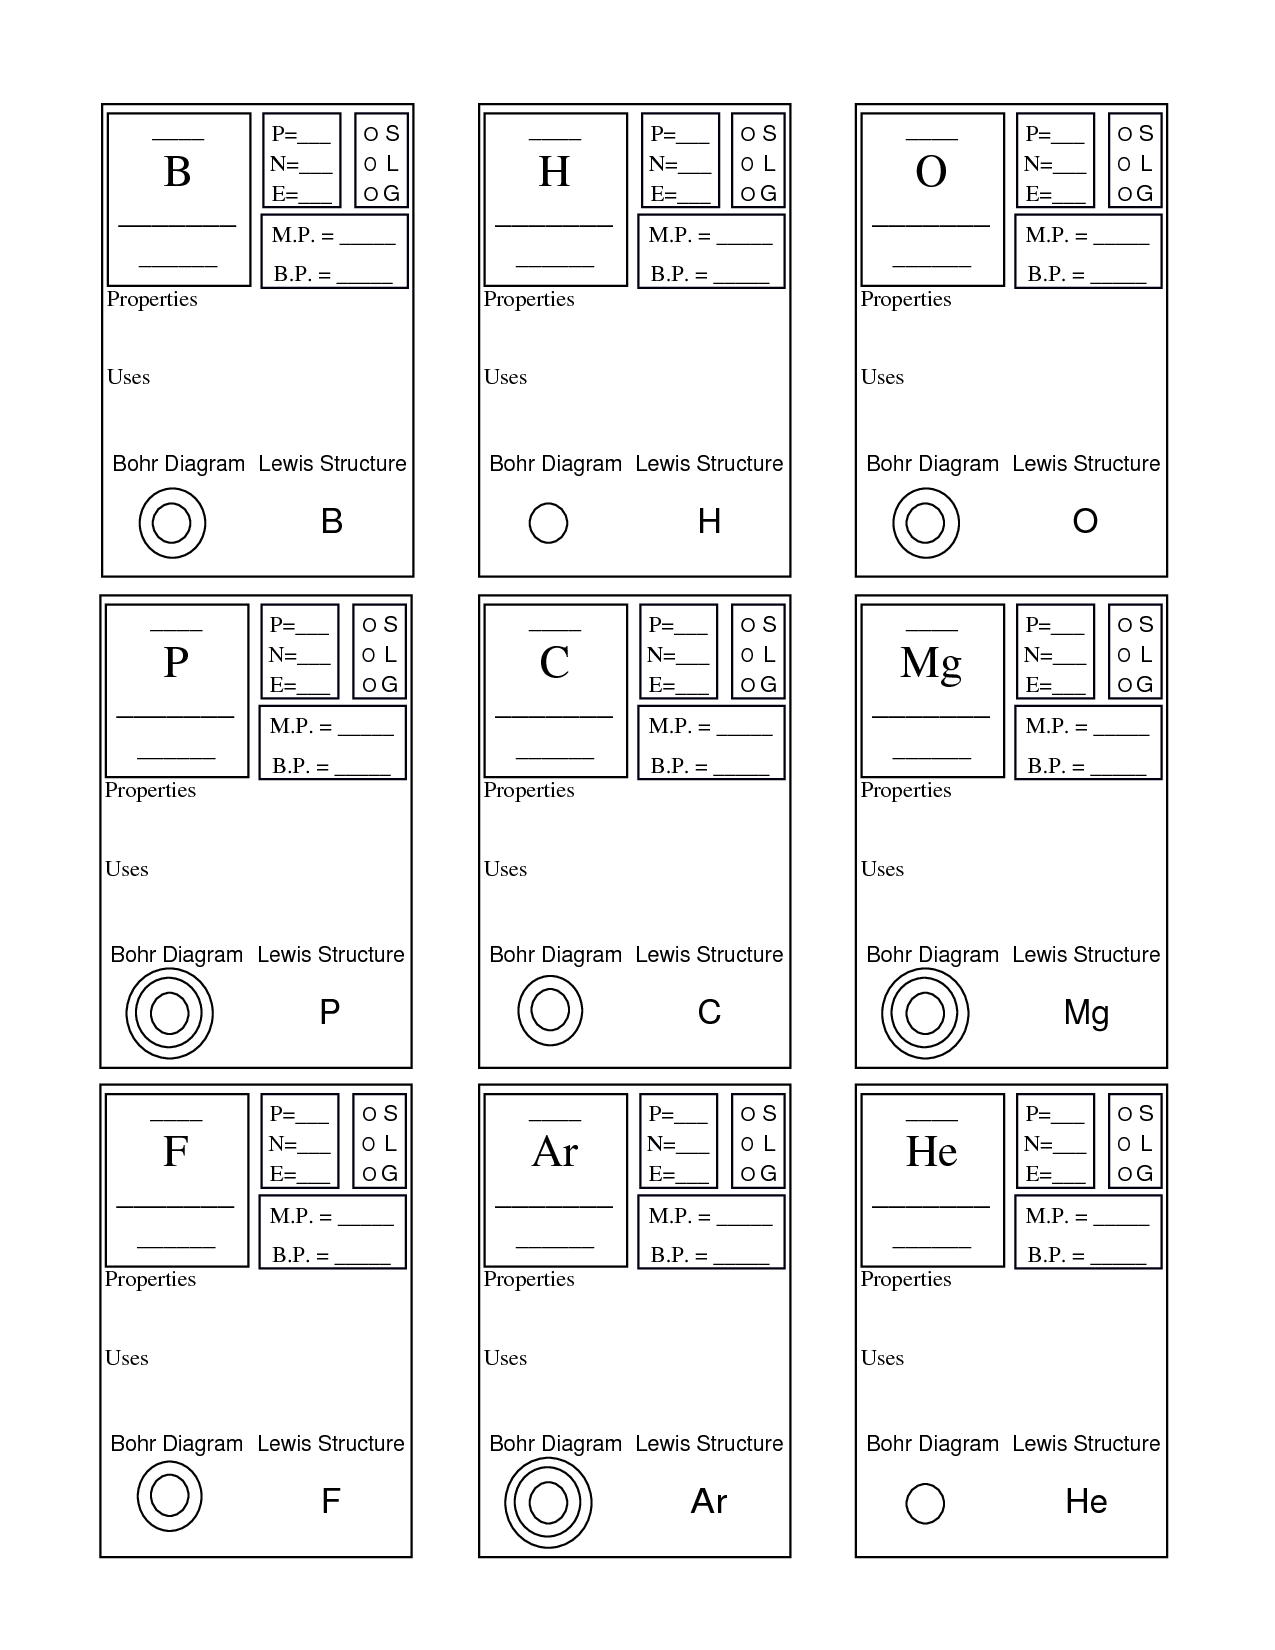 likewise Periodic Trends Practice Worksheet Answers   Fatoru as well 6th grade periodic table worksheets furthermore  additionally The Periodic Table Modern Drawing atoms Worksheet Answer Key Unique in addition  besides  together with Periodic Table Colored Color Coding The Worksheet Answer Key Alien in addition  also  additionally Periodic Table Atomic Radius Fresh Chemistry Periodic Table in addition  besides an alien periodic table worksheet answers – mediabanner info likewise  furthermore periodic table coloring activity answer key – Ronde in addition . on periodic table worksheet answer key